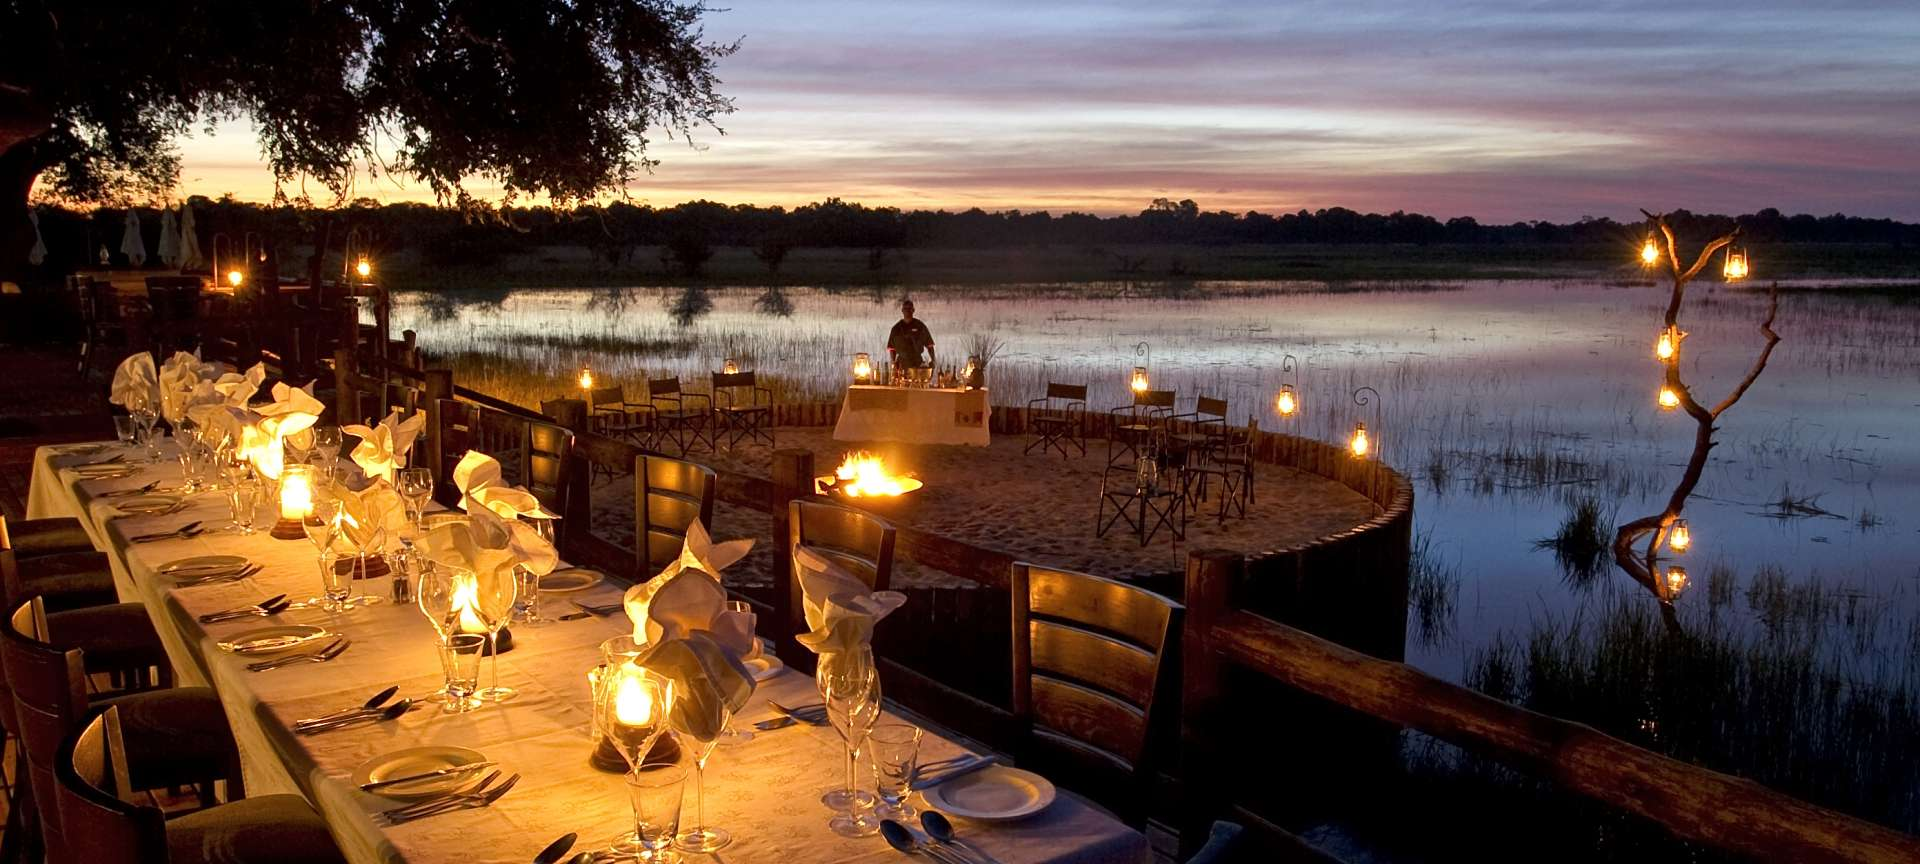 Luxury accommodation in Botswana